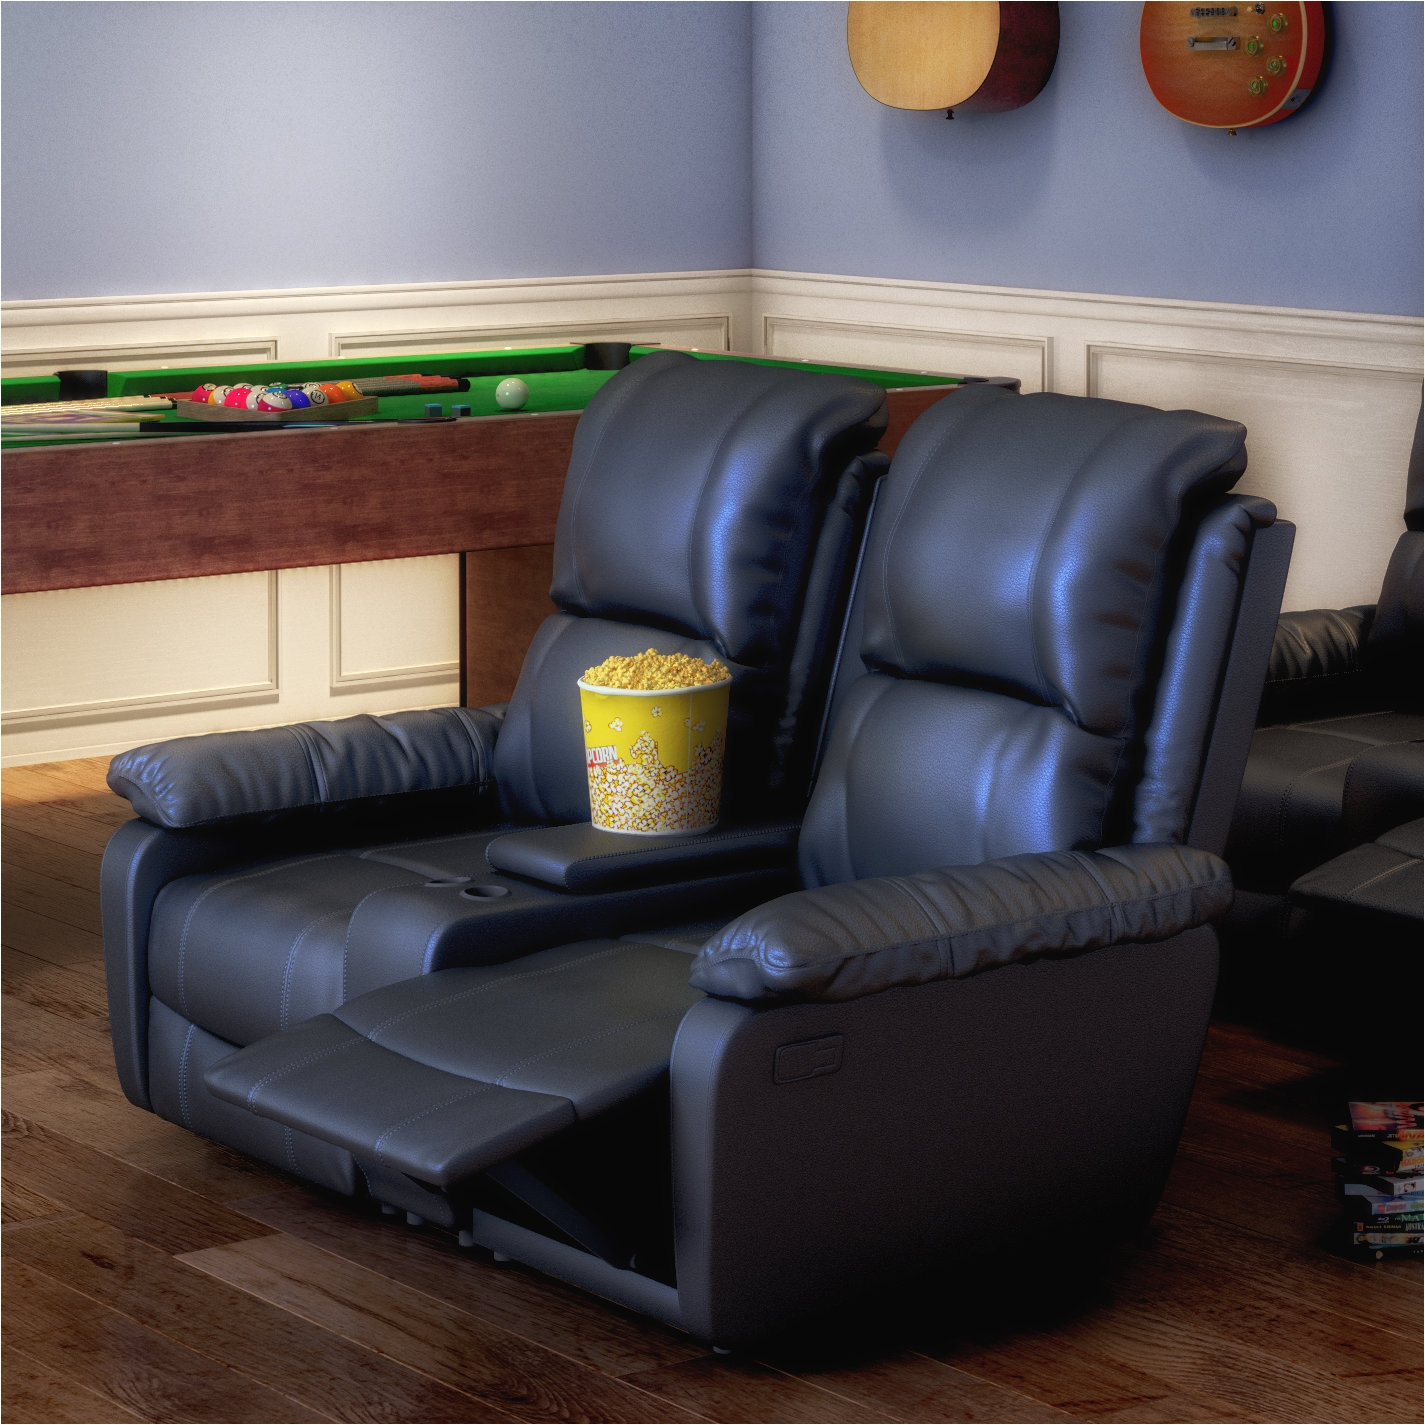 Used Movie theater Chairs for Sale Darby Home Co Sackville 2 Seat Home theater Loveseat Reviews Wayfair